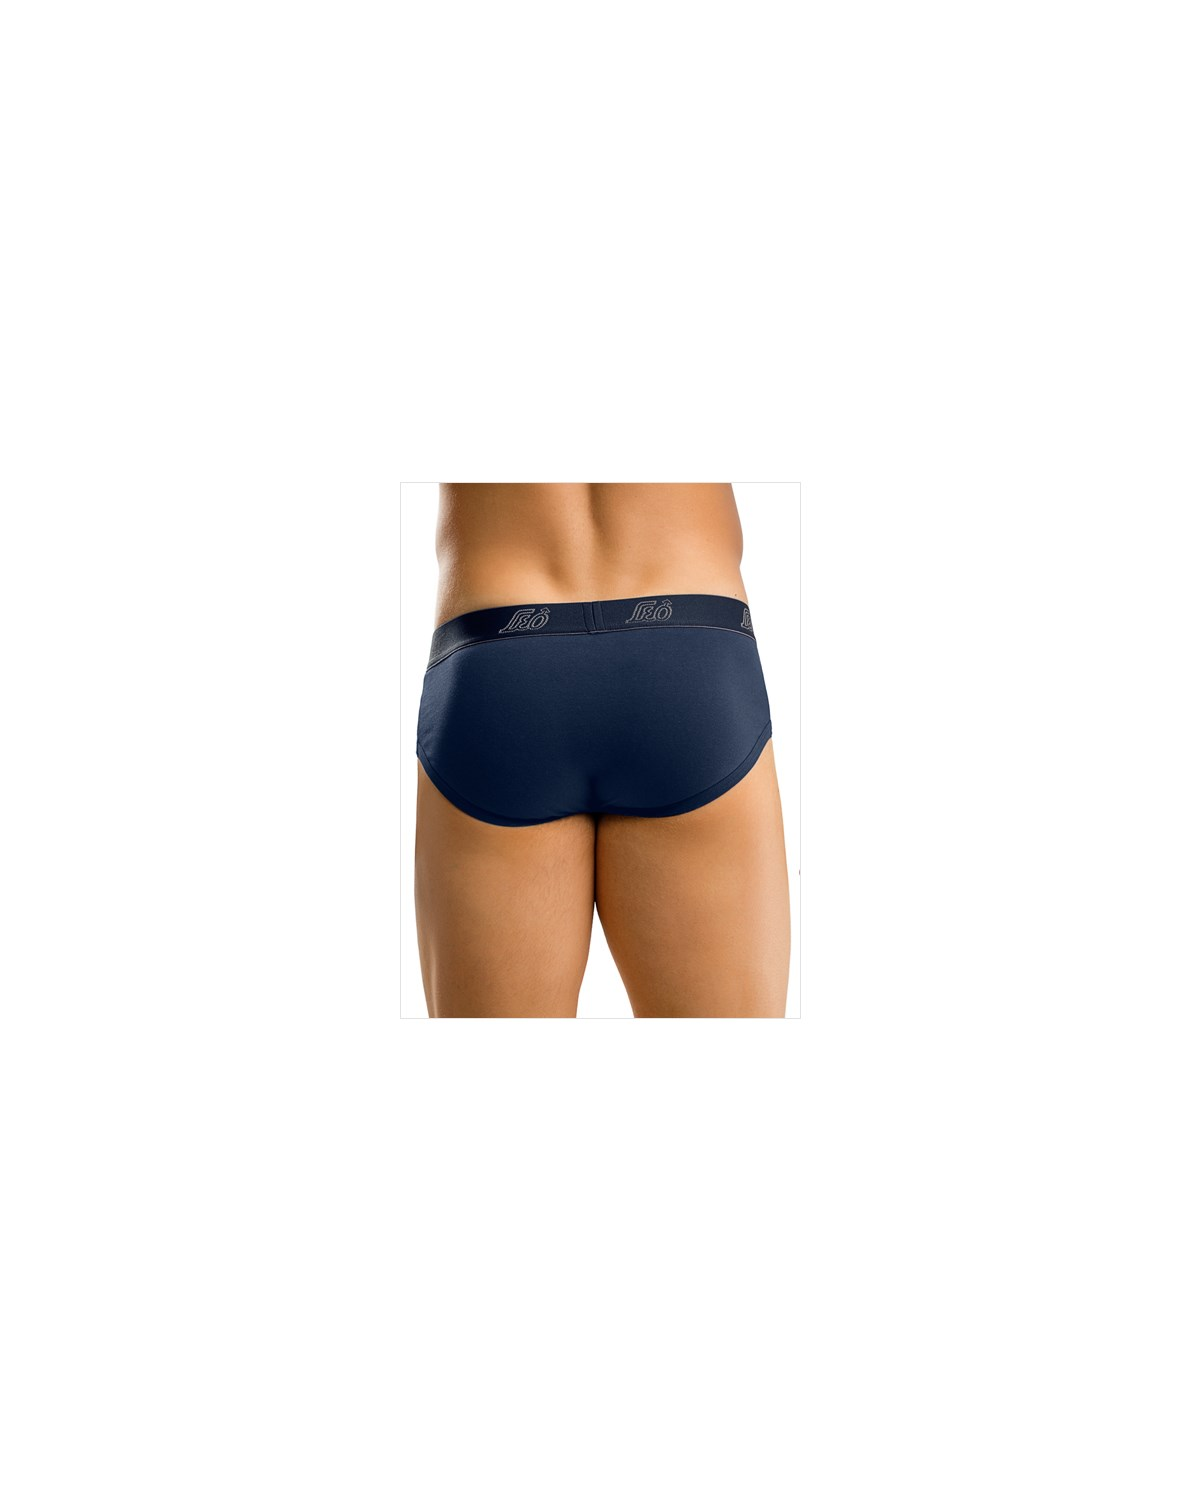 leo xtreme adjust-fit cotton brief-516- All Blue-MainImage